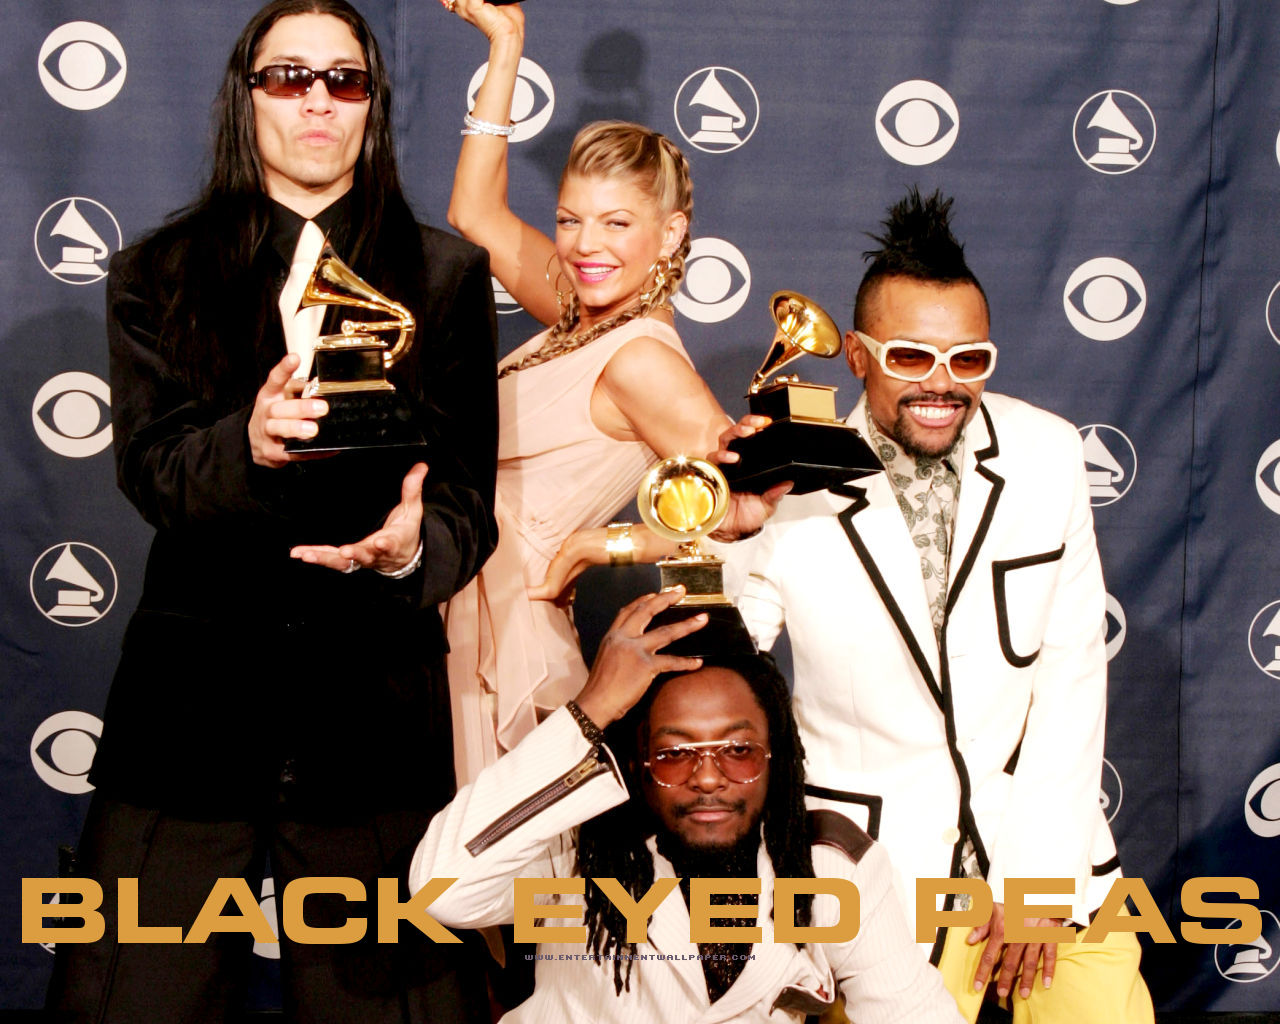 Dionne Beard: black eyed peas wallpaper hd